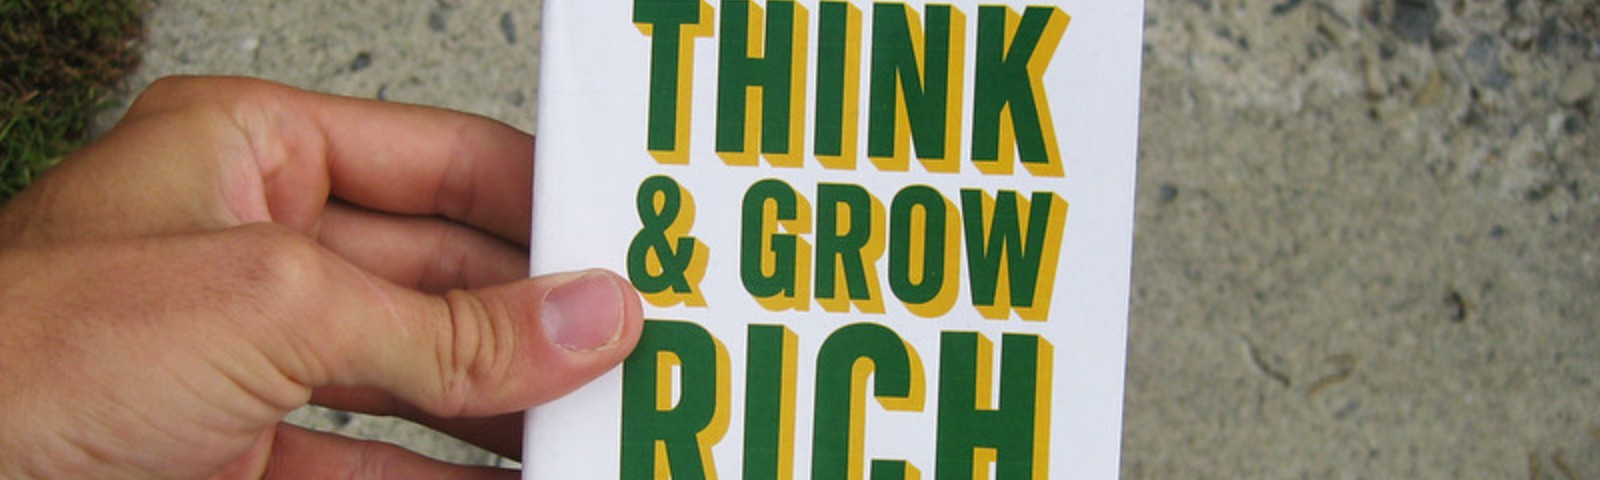 A hand holding the book by Napoleon Hill, Think & Grow Rich.